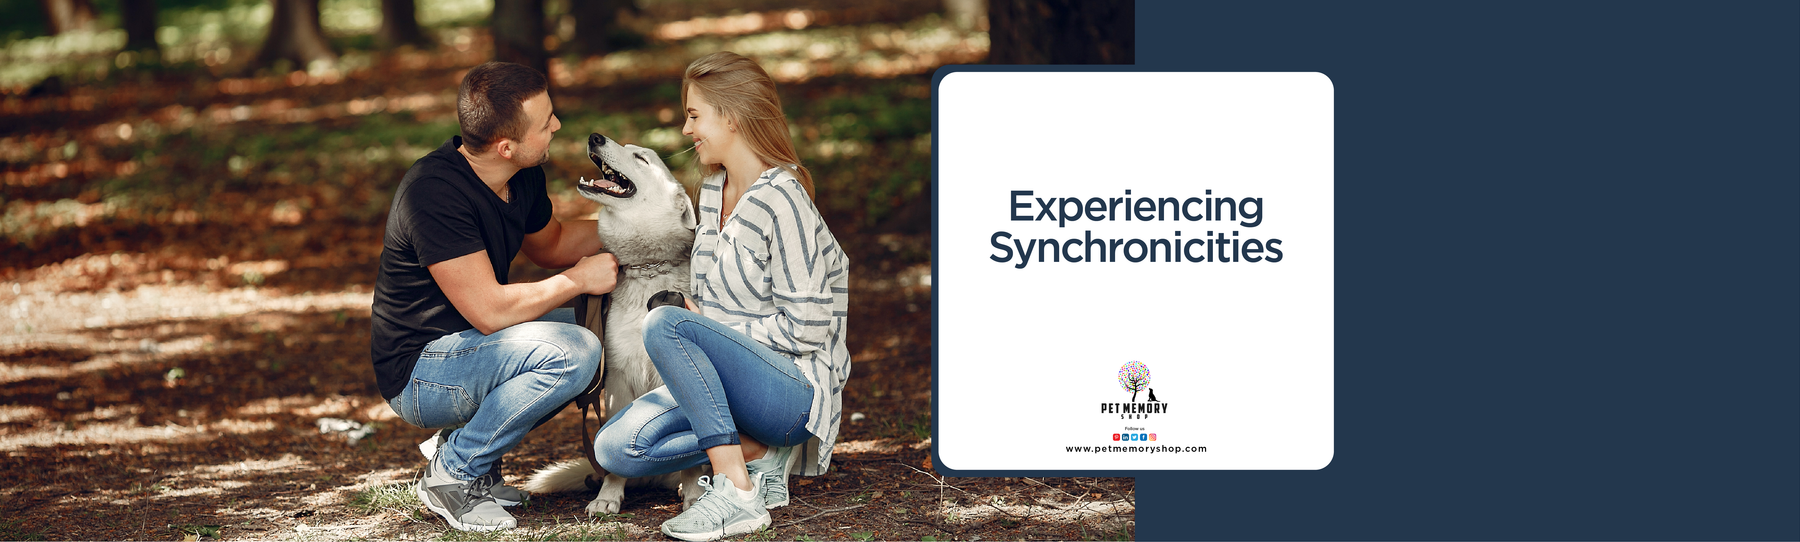 Experiencing Synchronicities